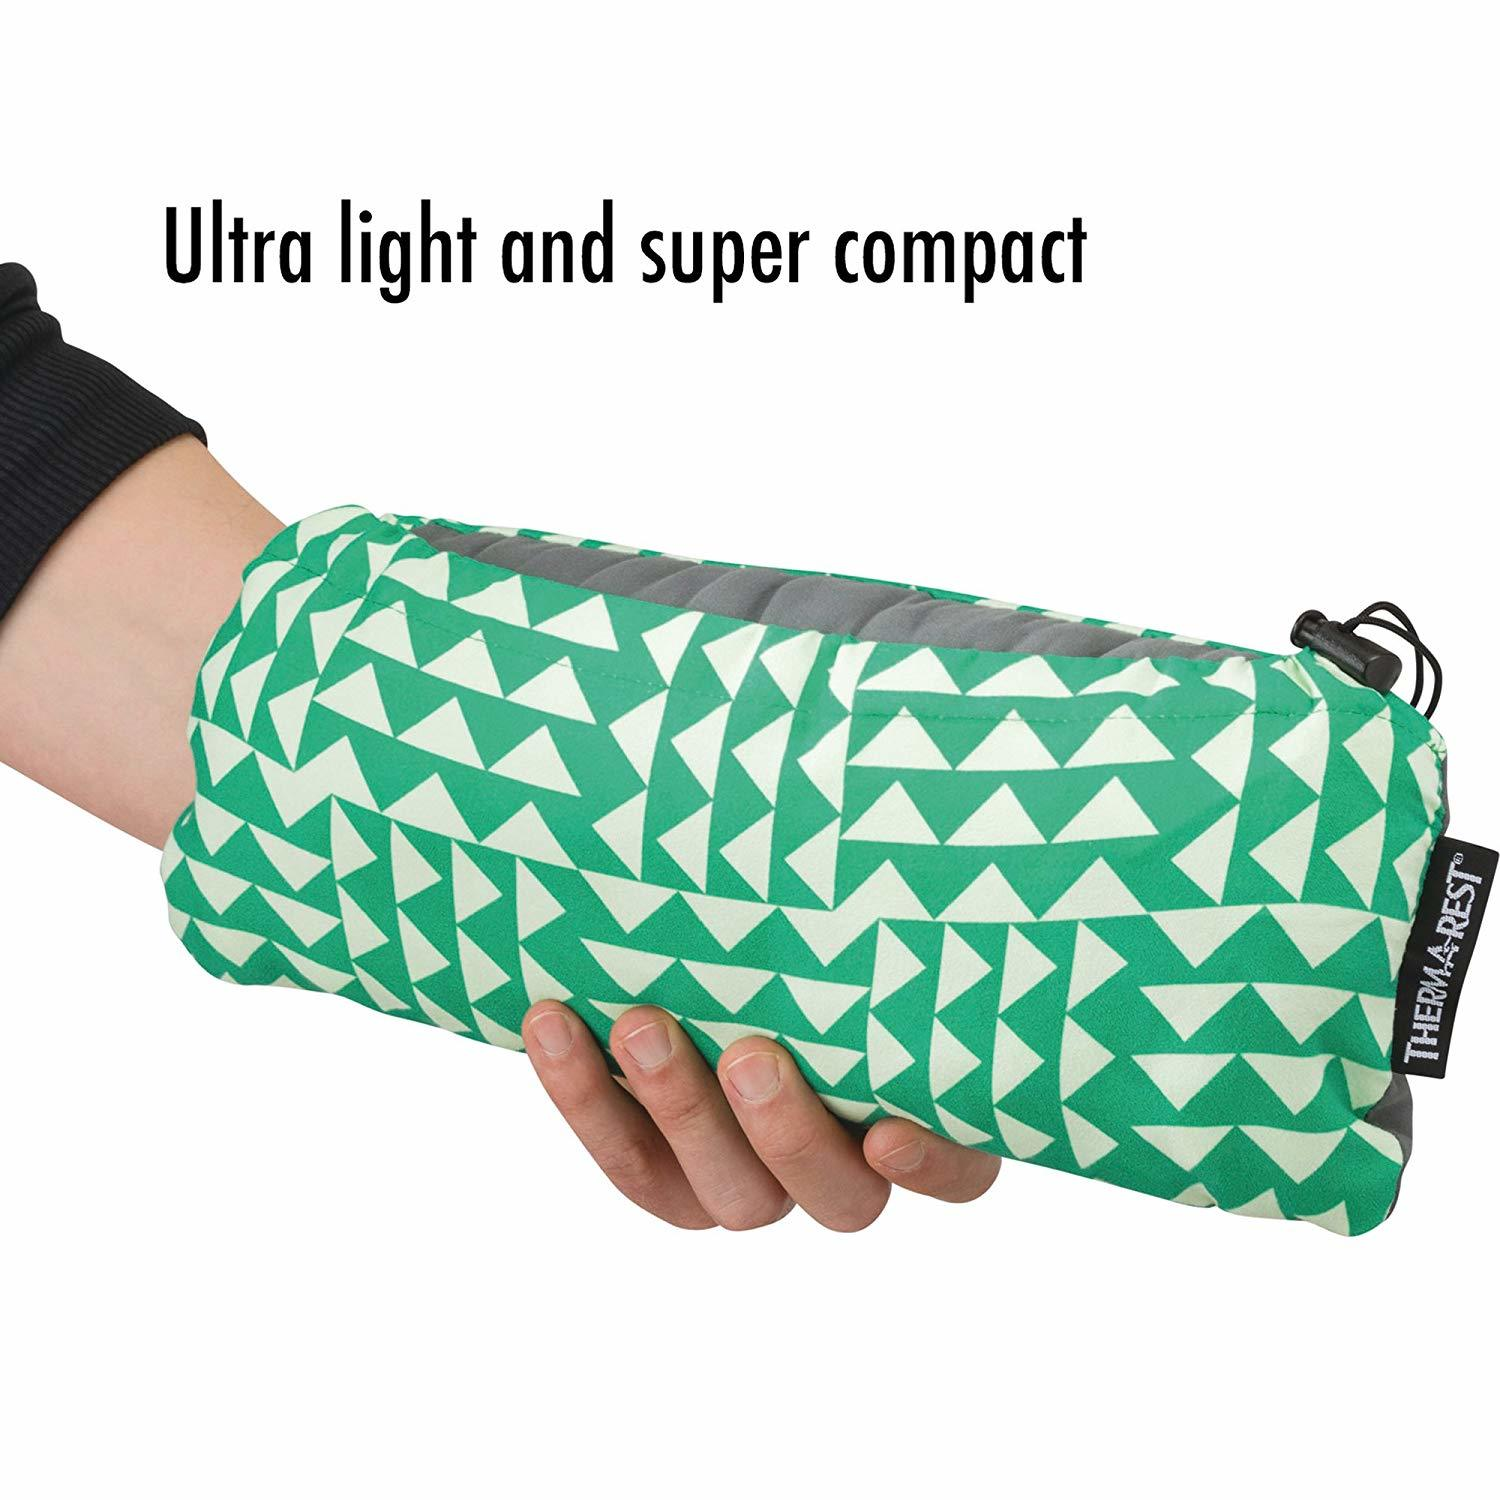 Thermarest Compressible Pillow super compact